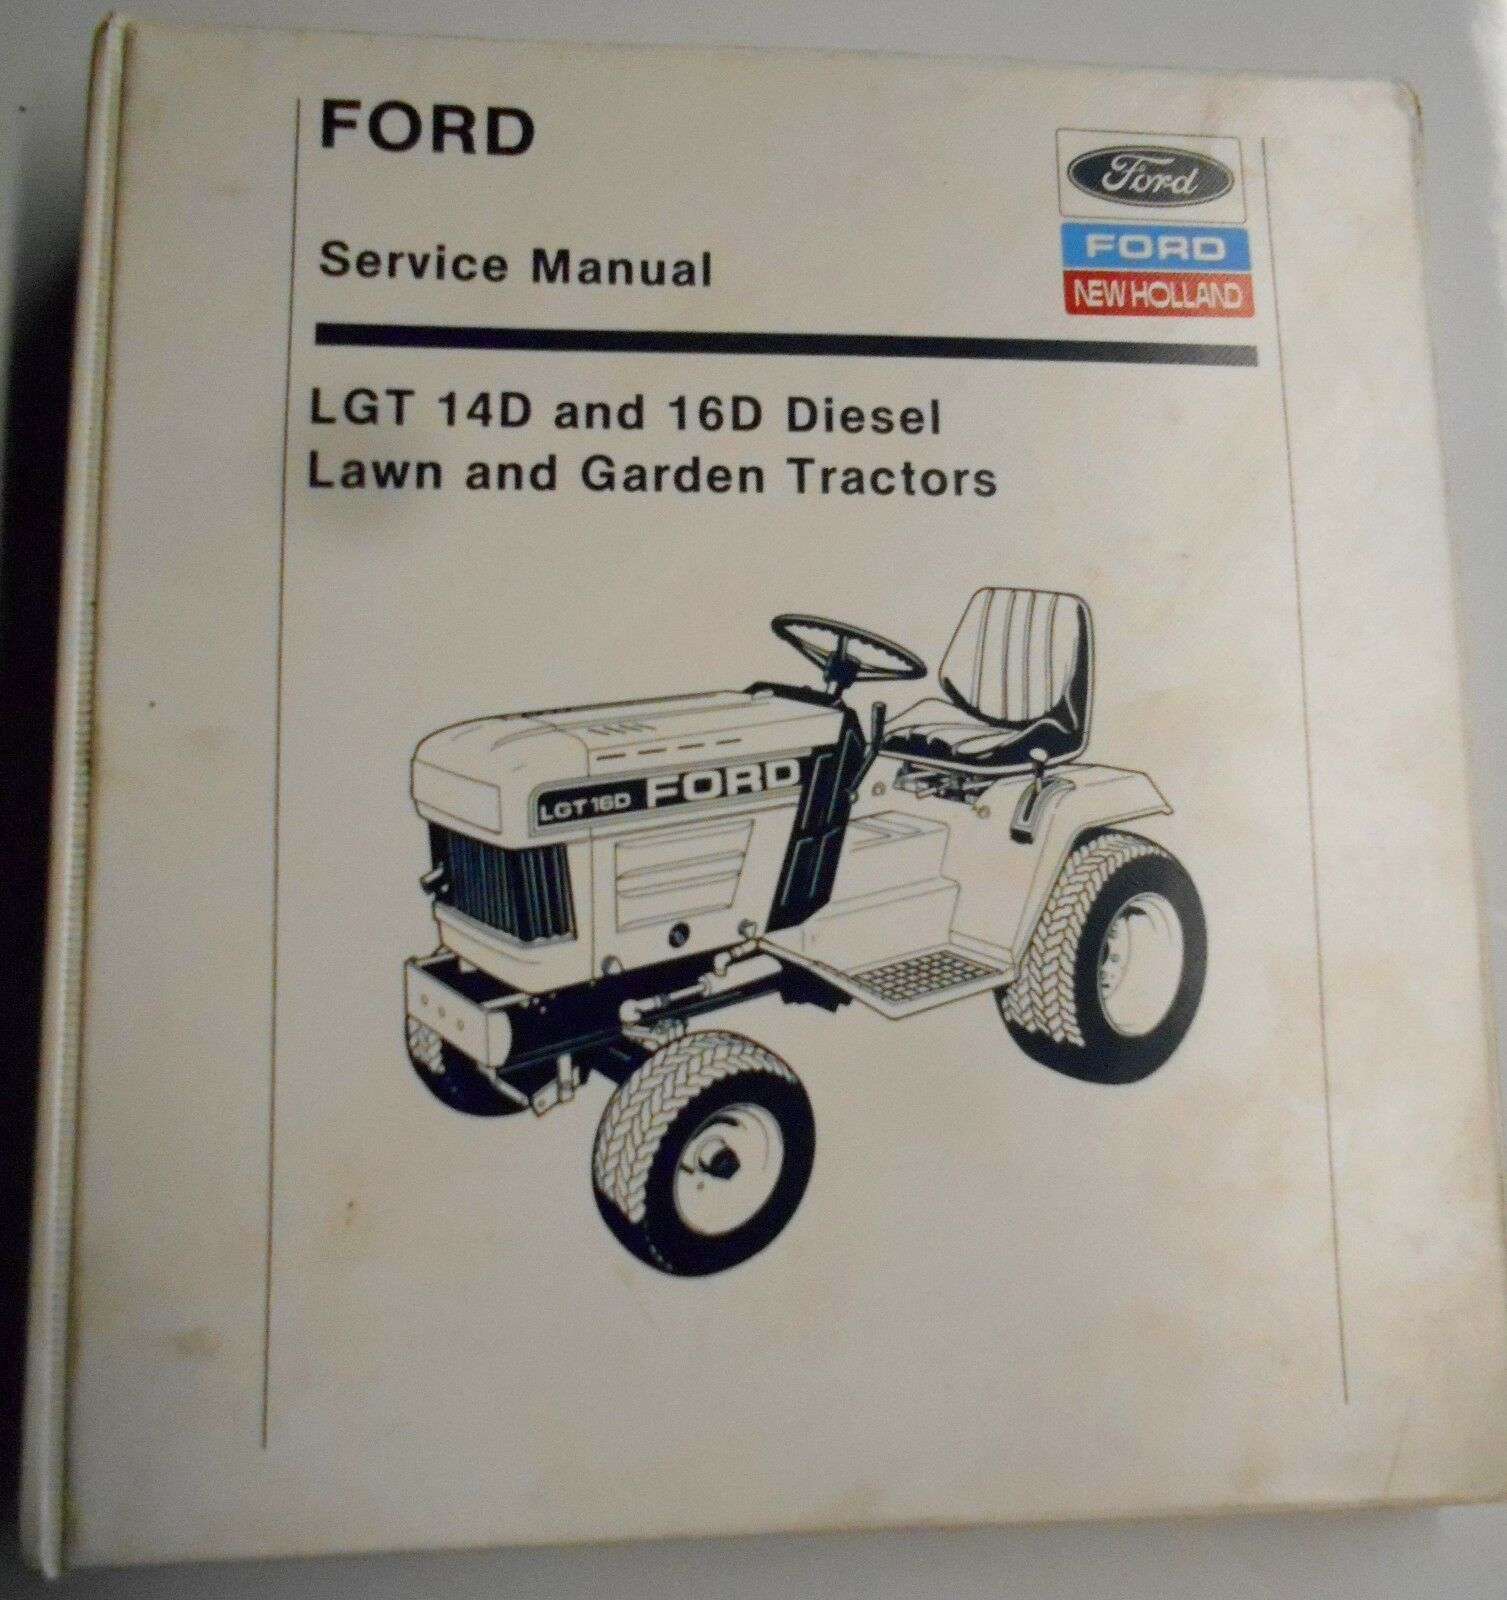 Ford New Holland Lgt 14D And 16D Diesel Lawn And Garden Tractors Service  Manual 1 of 1Only 1 available See More